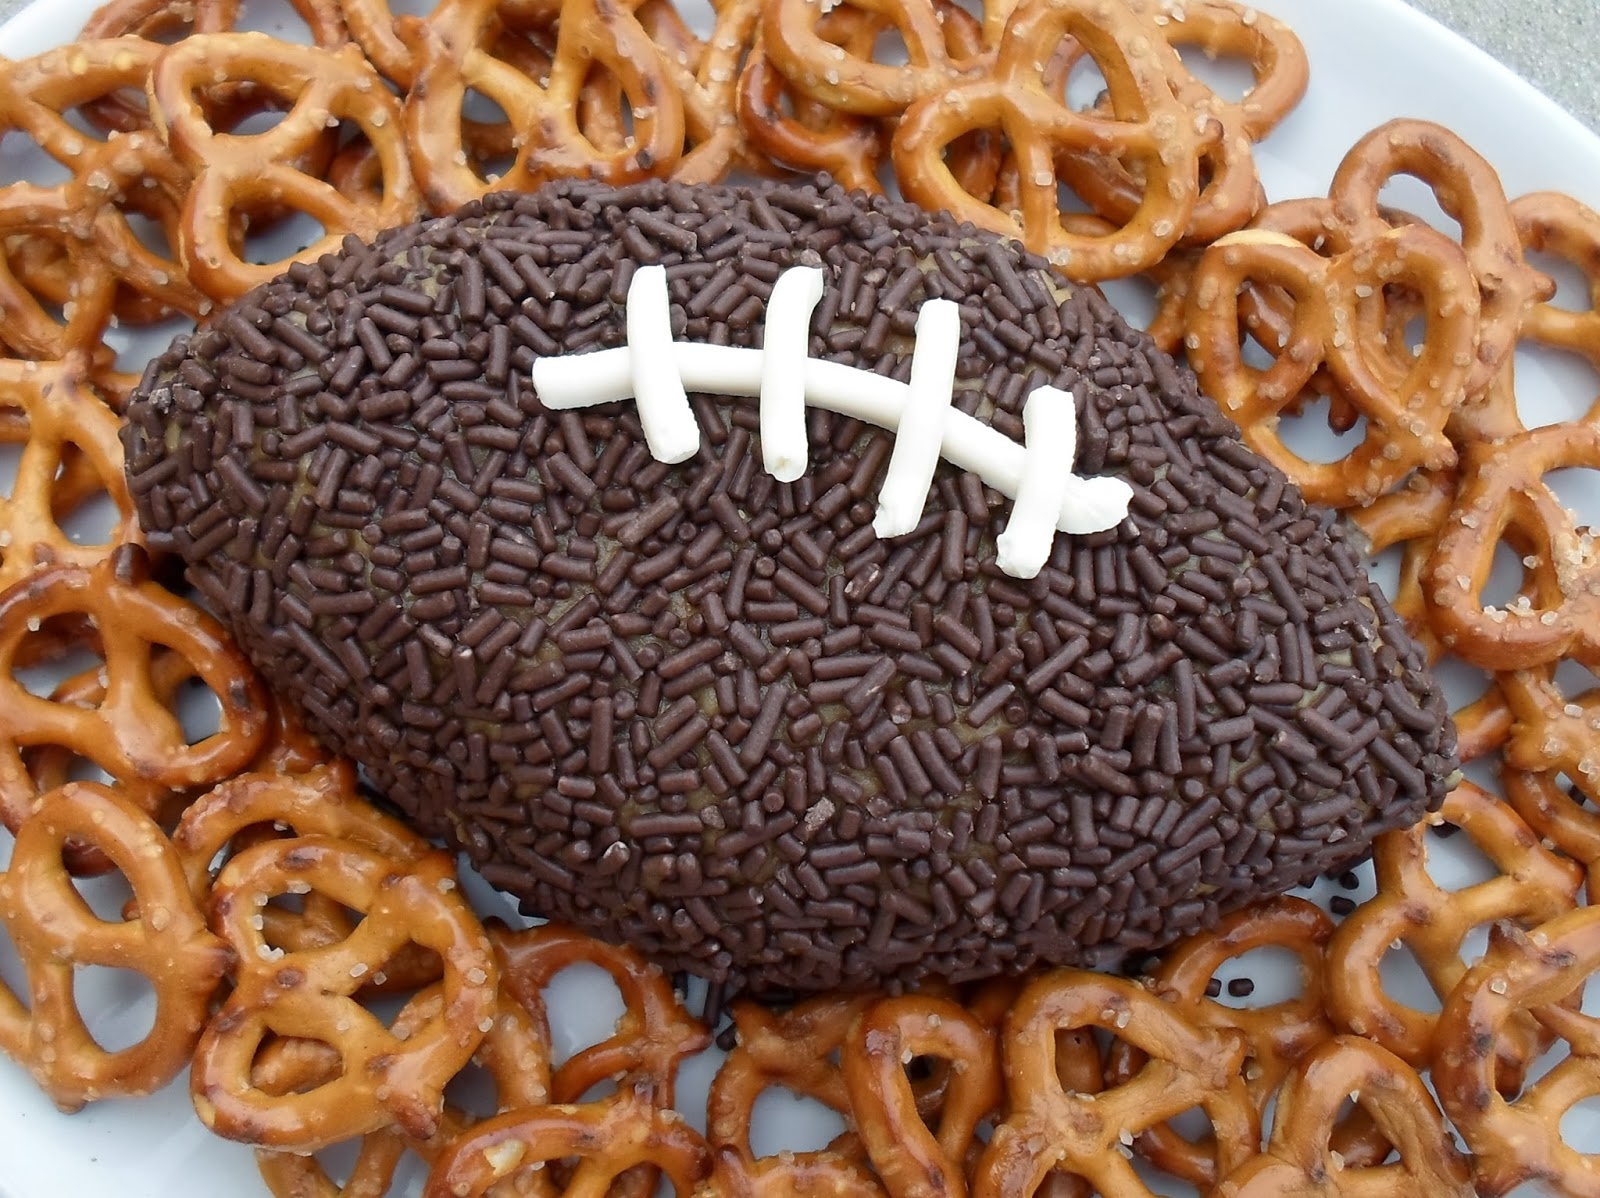 Happier Than A Pig In Mud: Football Shaped Peanut Butter Dip